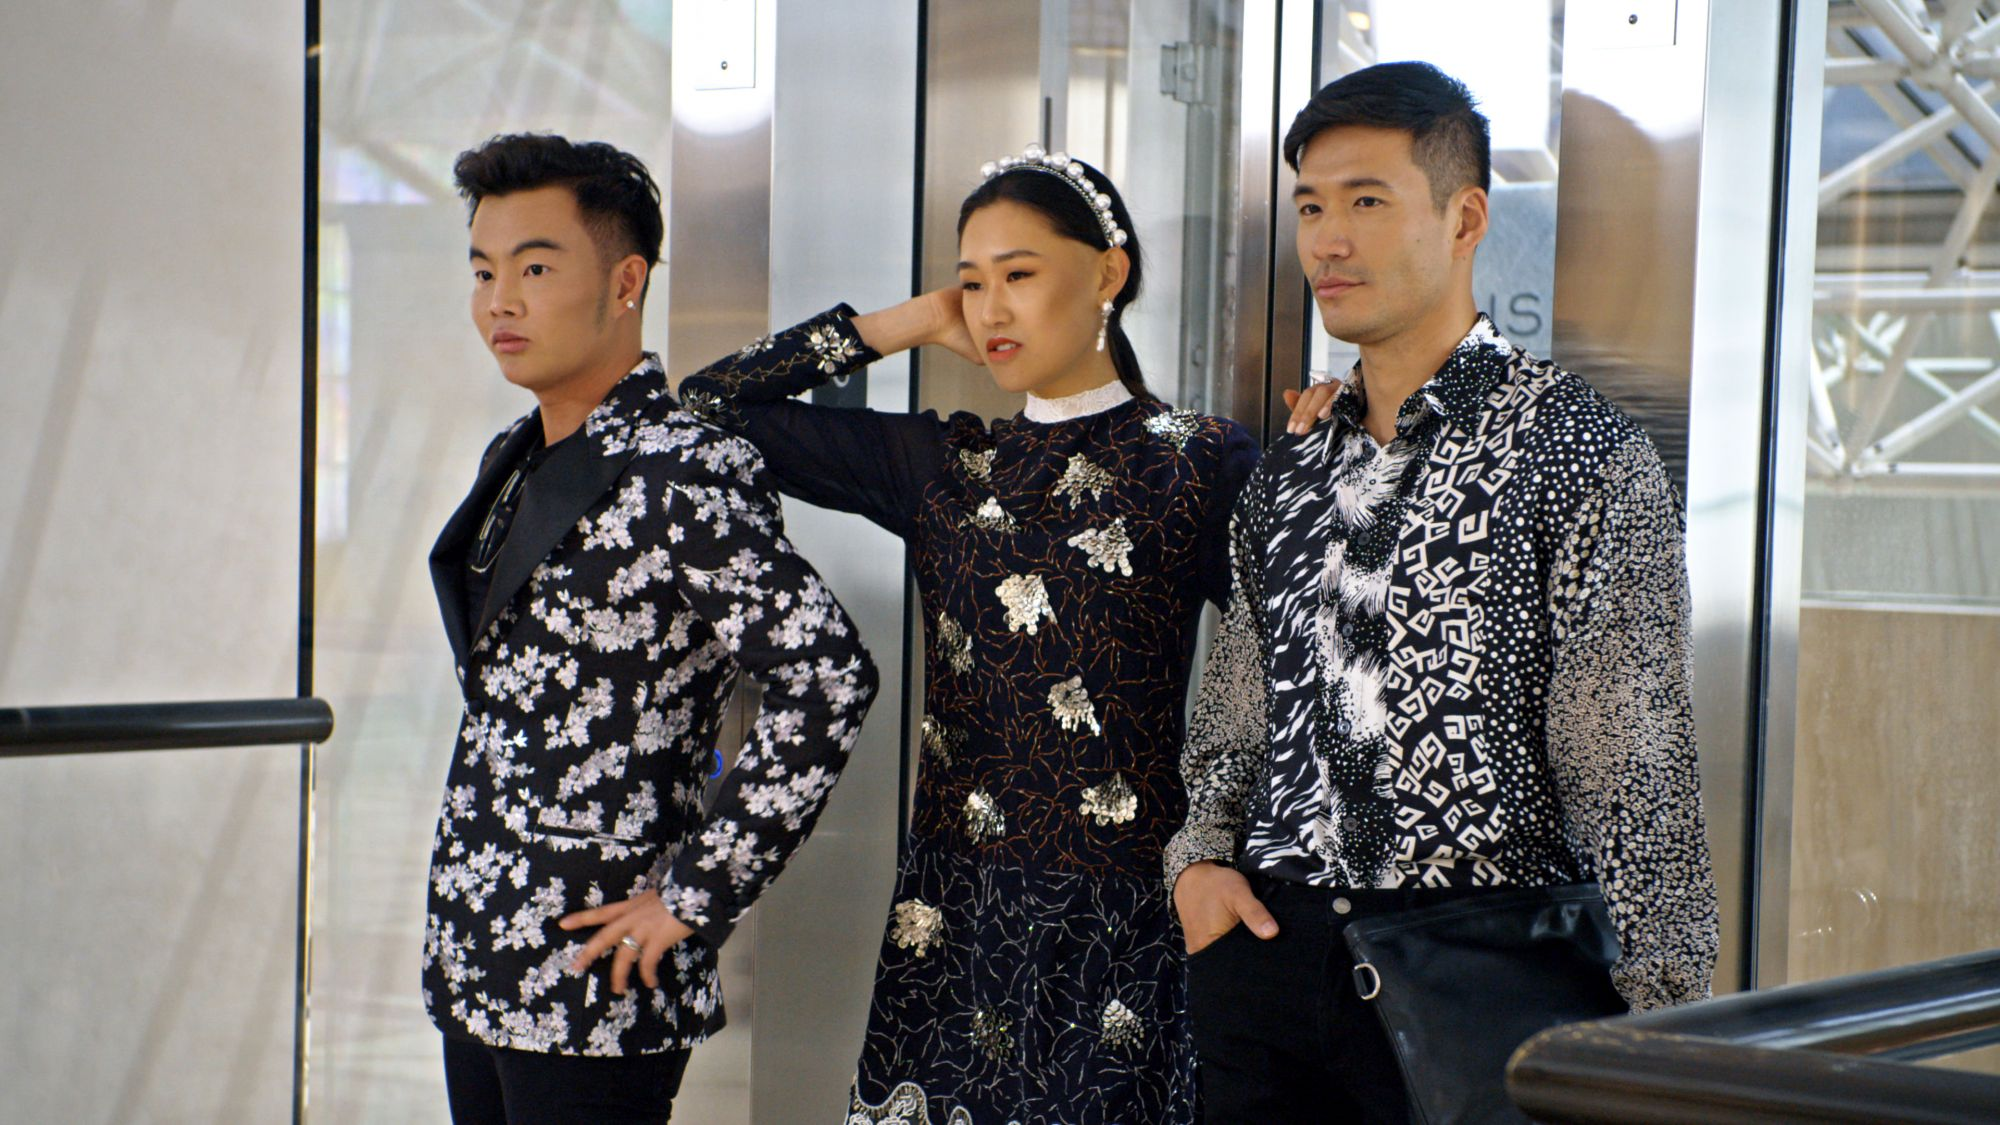 "(L-R) Kane Lim, Jaime Xie and Kevin Kreider in episode 8 ""Will You Marry Me?"" of Bling Empire: Season 1. c. Courtesy of Netflix © 2021"